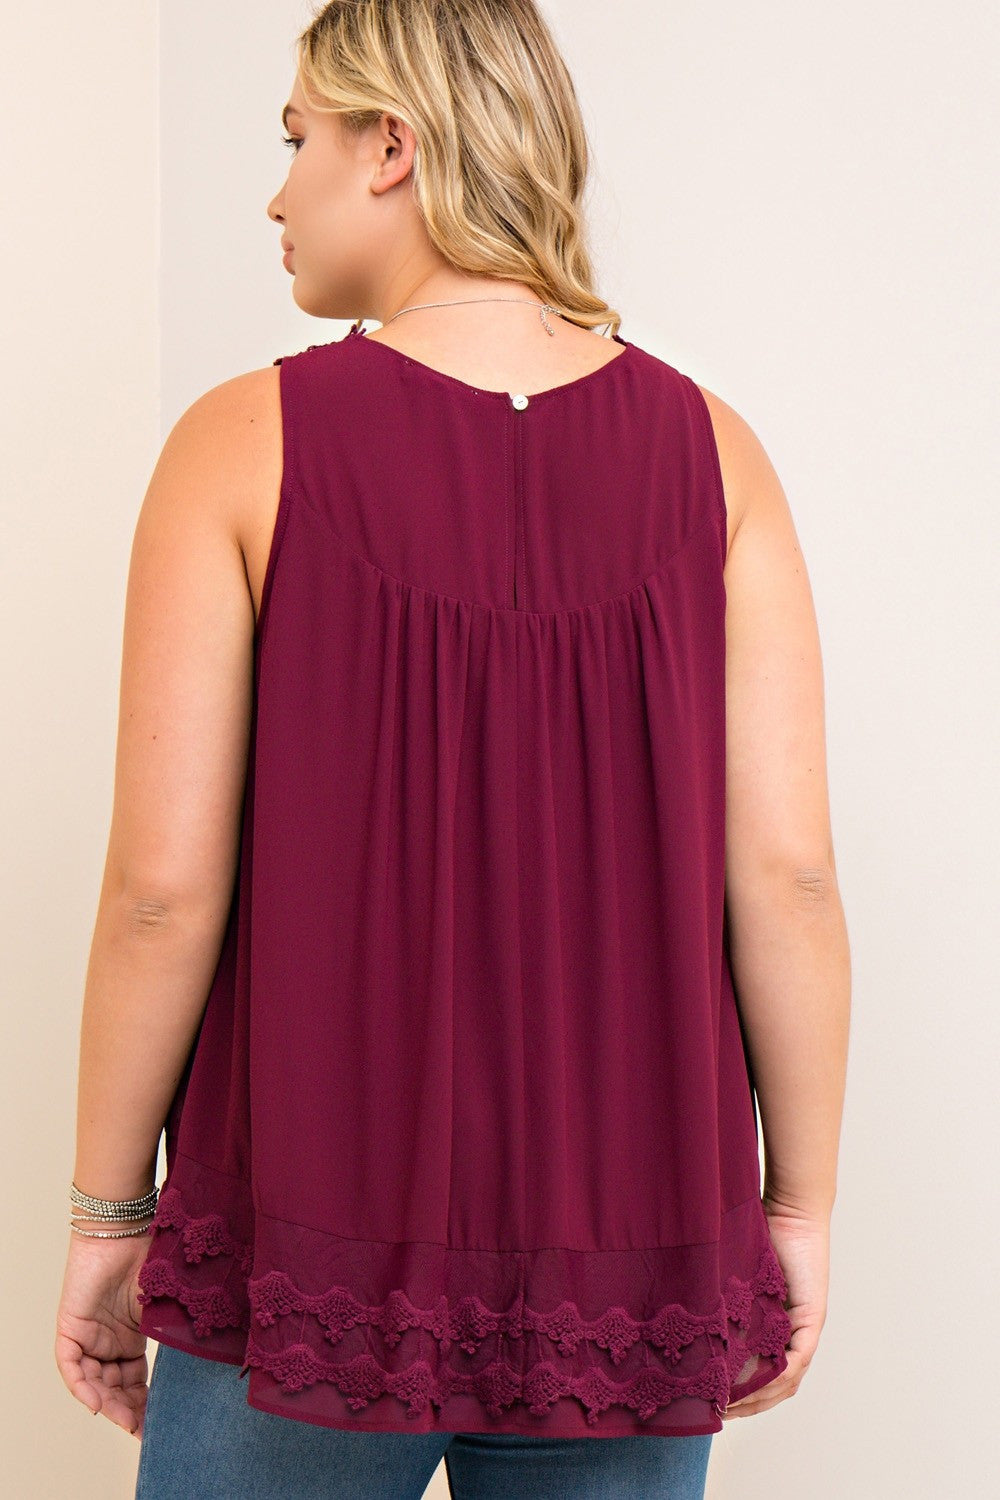 Back view young plus size woman wearing wine colored sleeveless crochet trim top